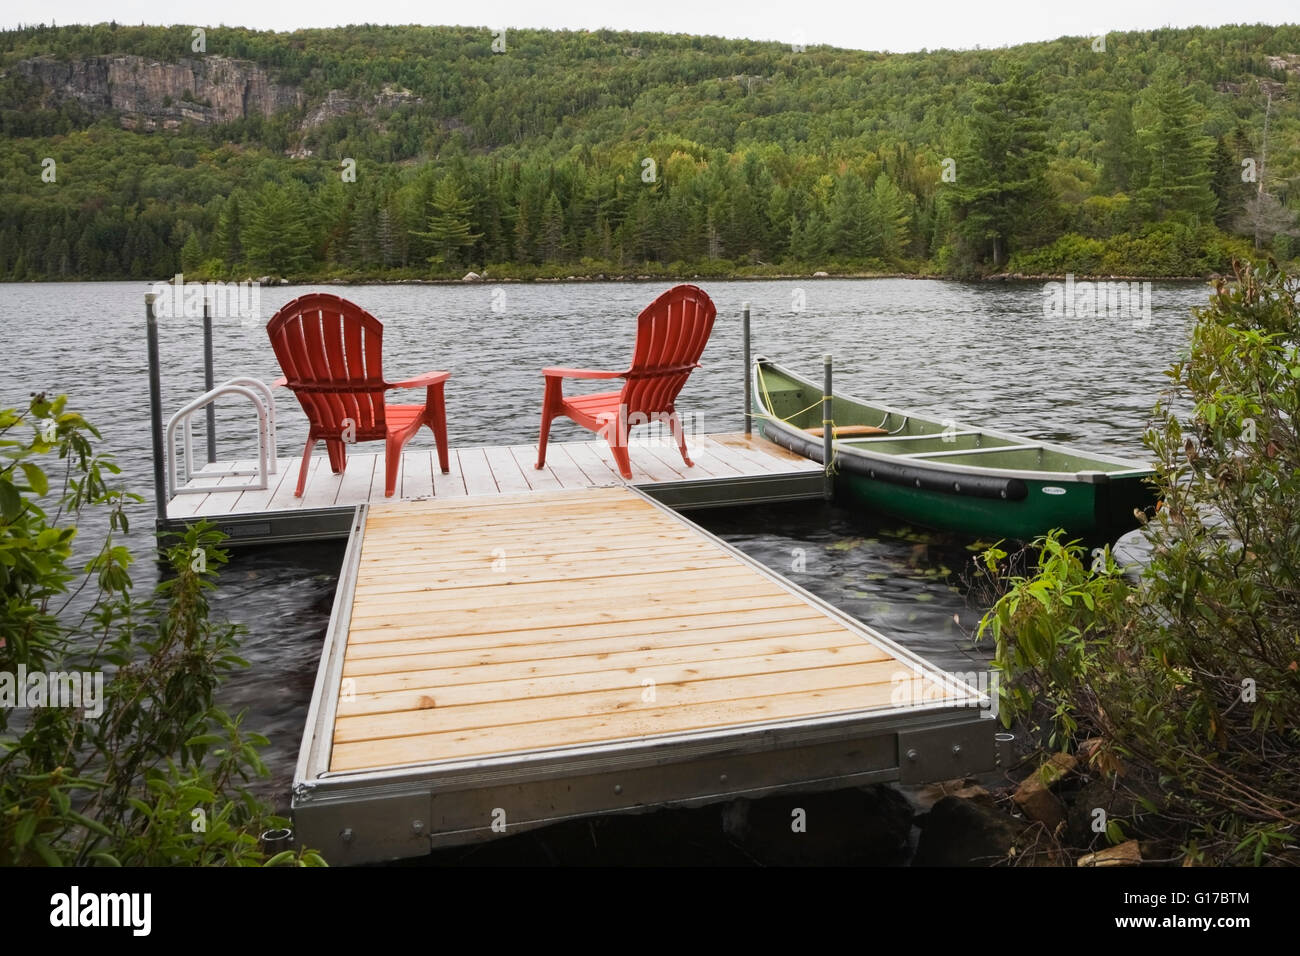 Superbe Two Red Adirondack Chairs On Floating Dock On River